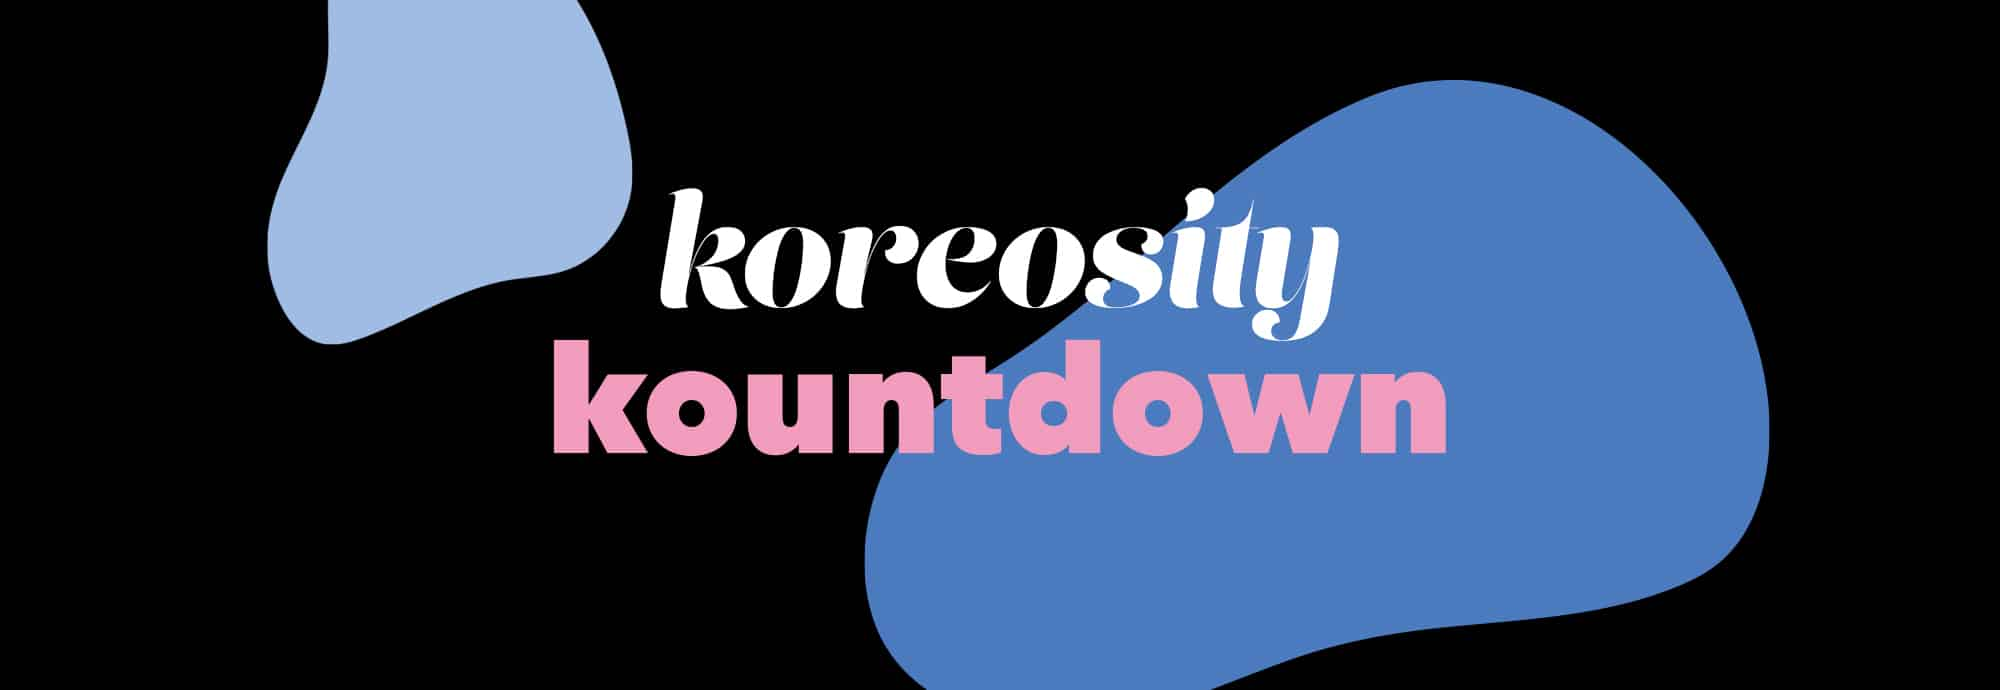 black-friday-koreosity-kountdown